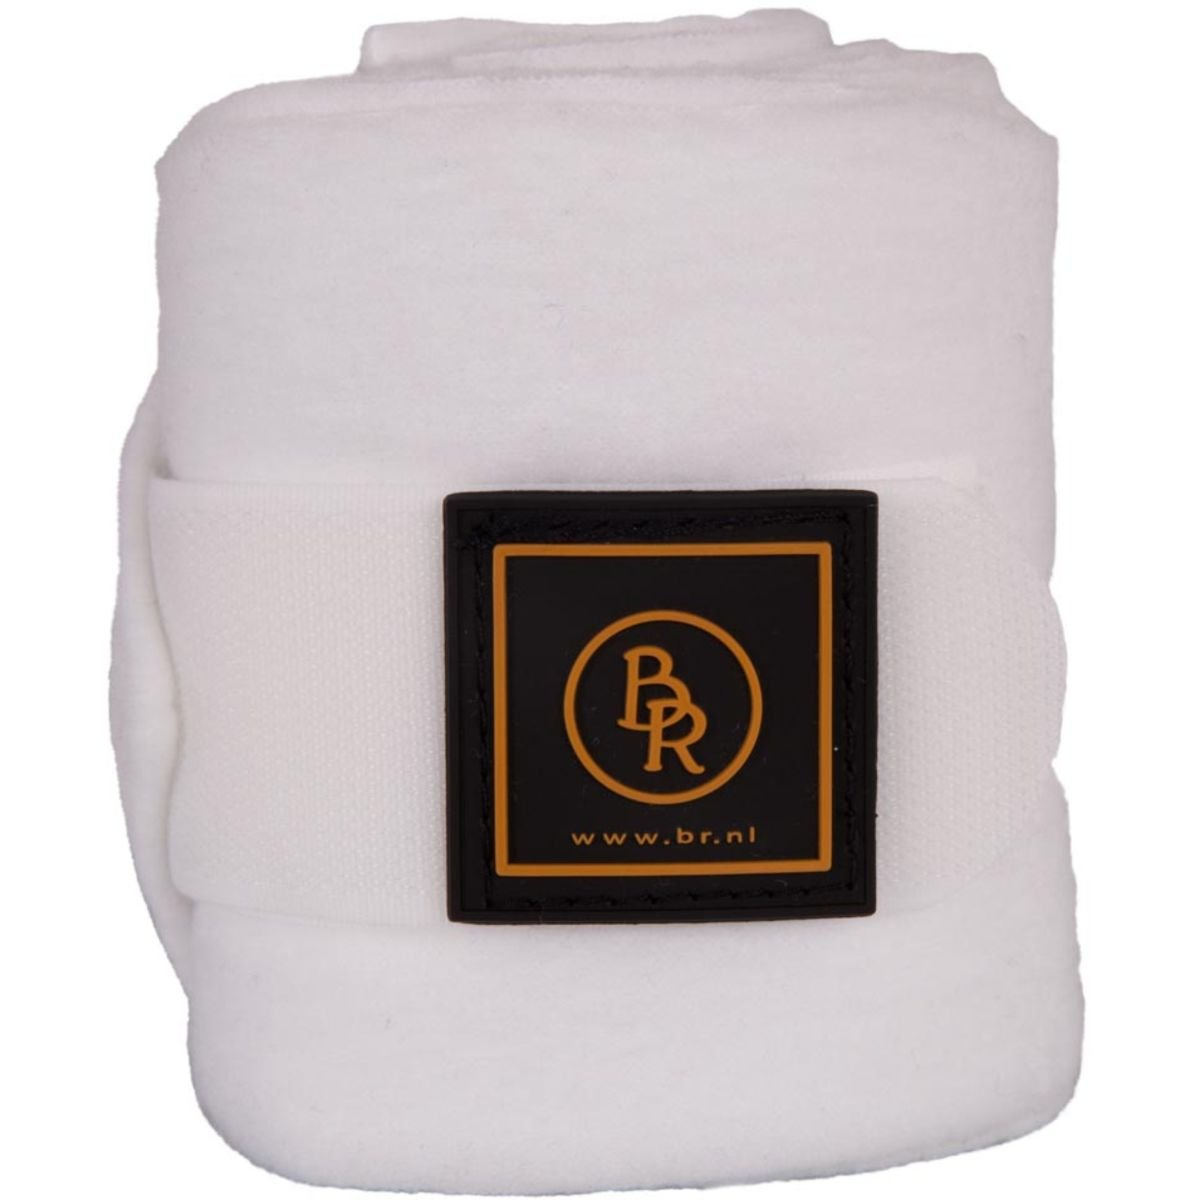 Afbeelding van Bandages/polo BR Event Fleece 2 mtr Wit Pony